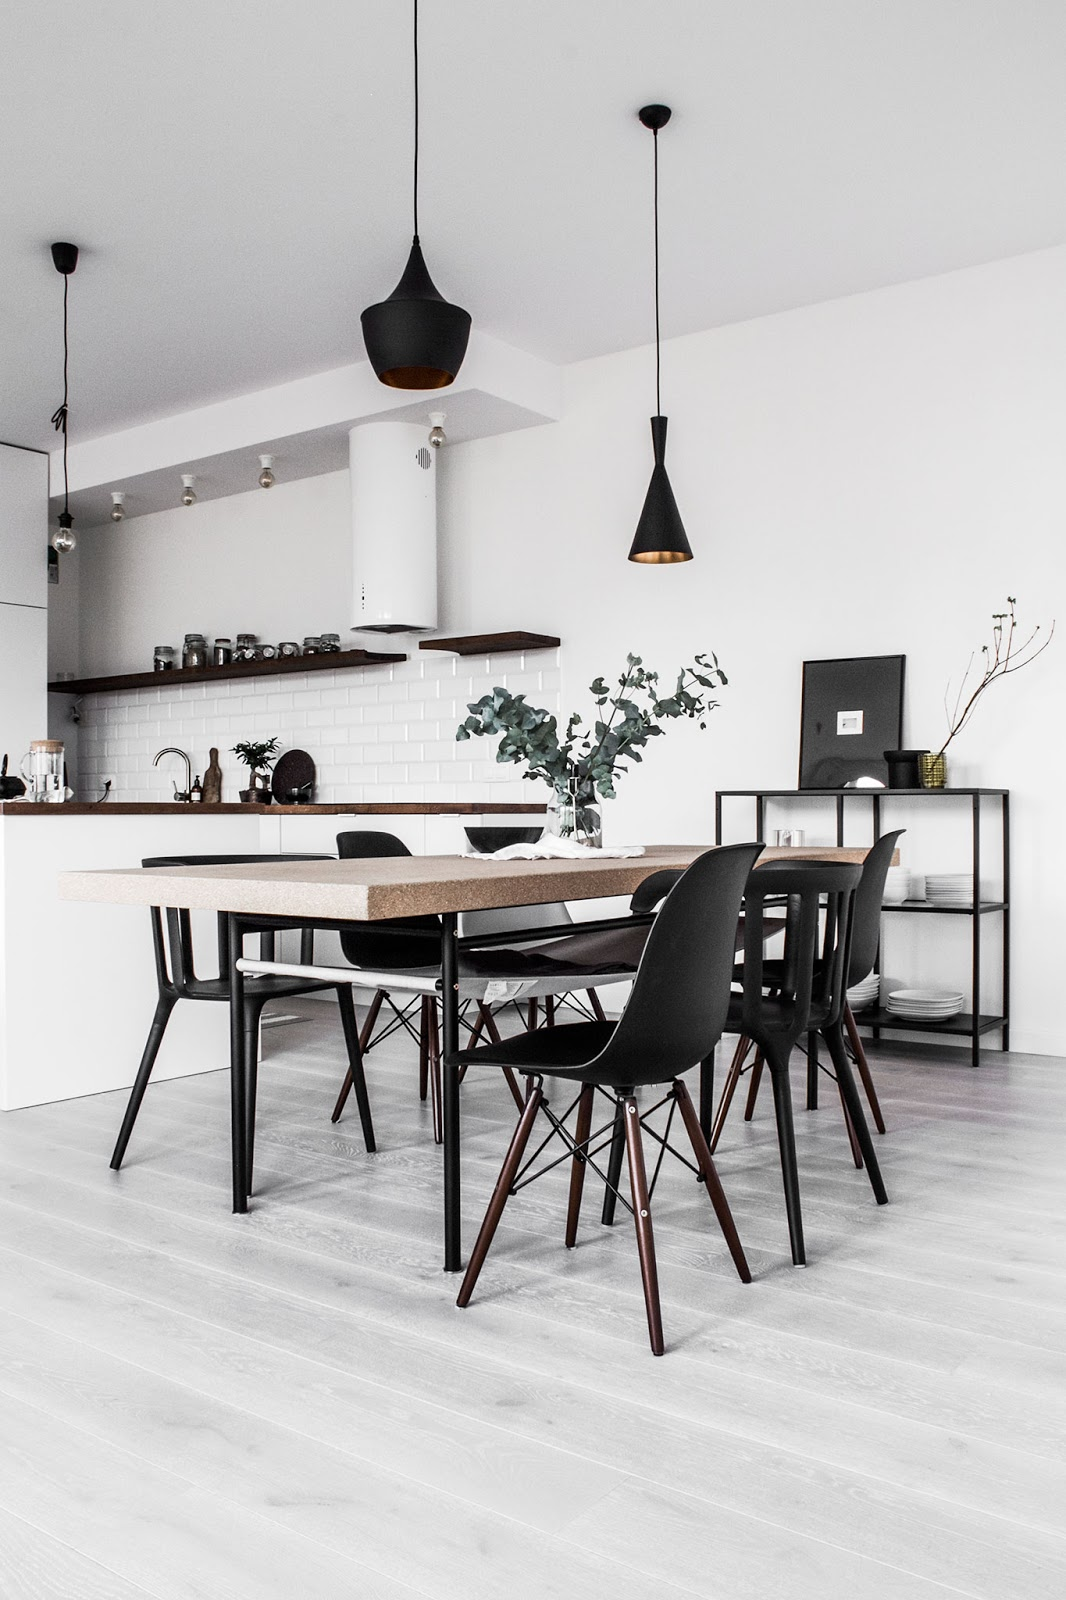 scandinavian apartment, black and white interior kitchen with eames chairs and tom dixon lights